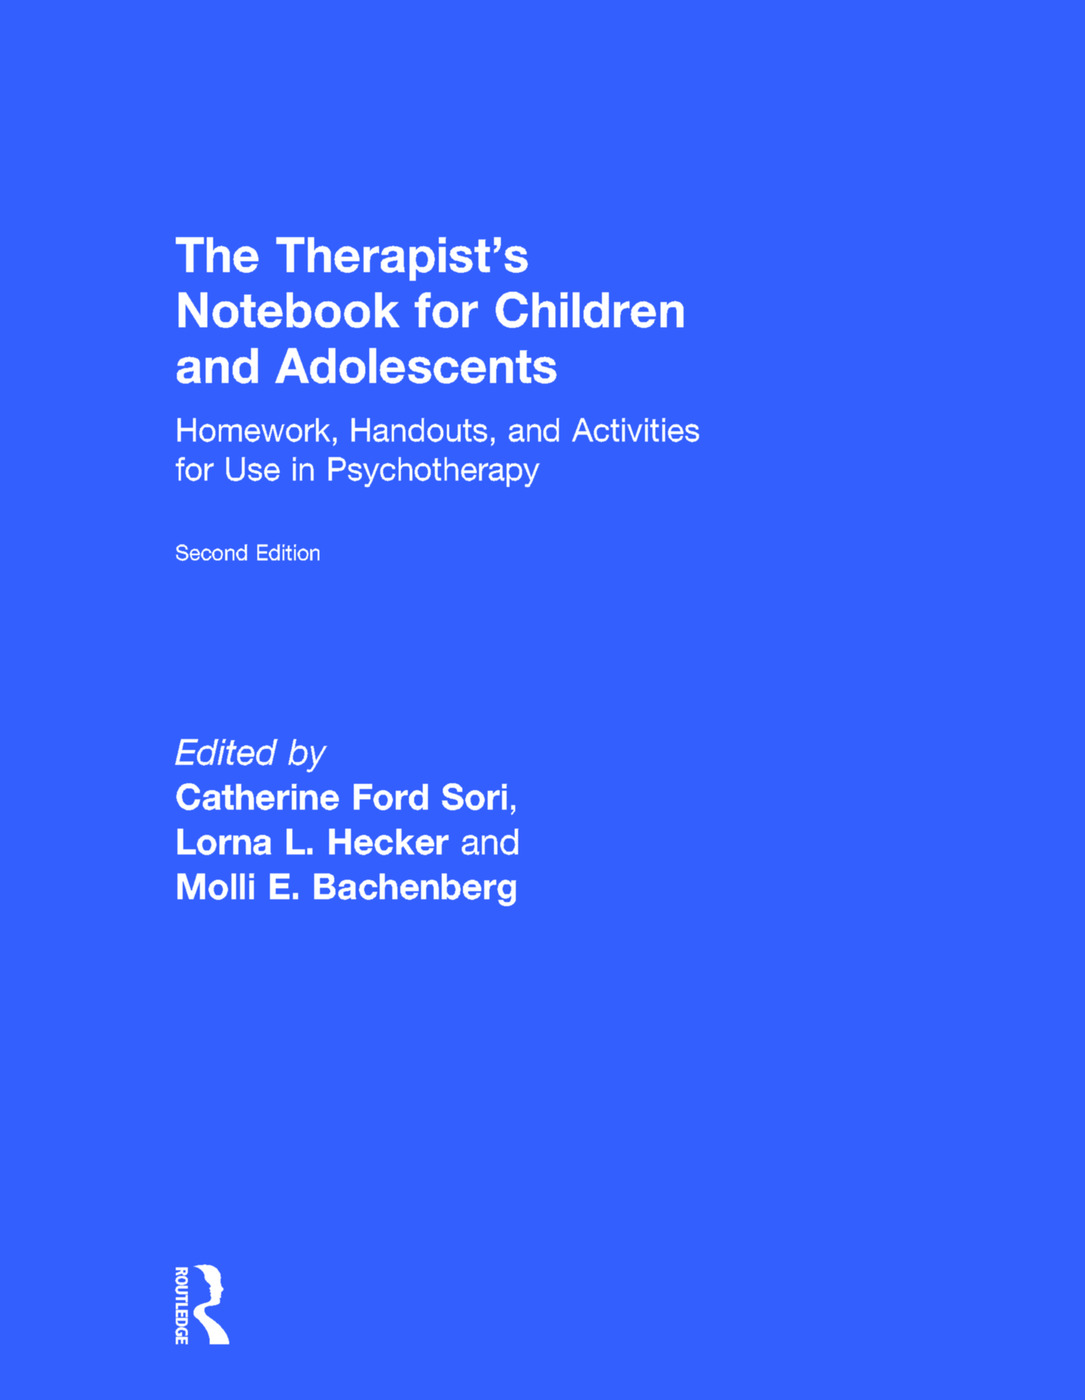 The Therapist's Notebook for Children and Adolescents: Homework, Handouts, and Activities for Use in Psychotherapy, 2nd Edition (Hardback) book cover